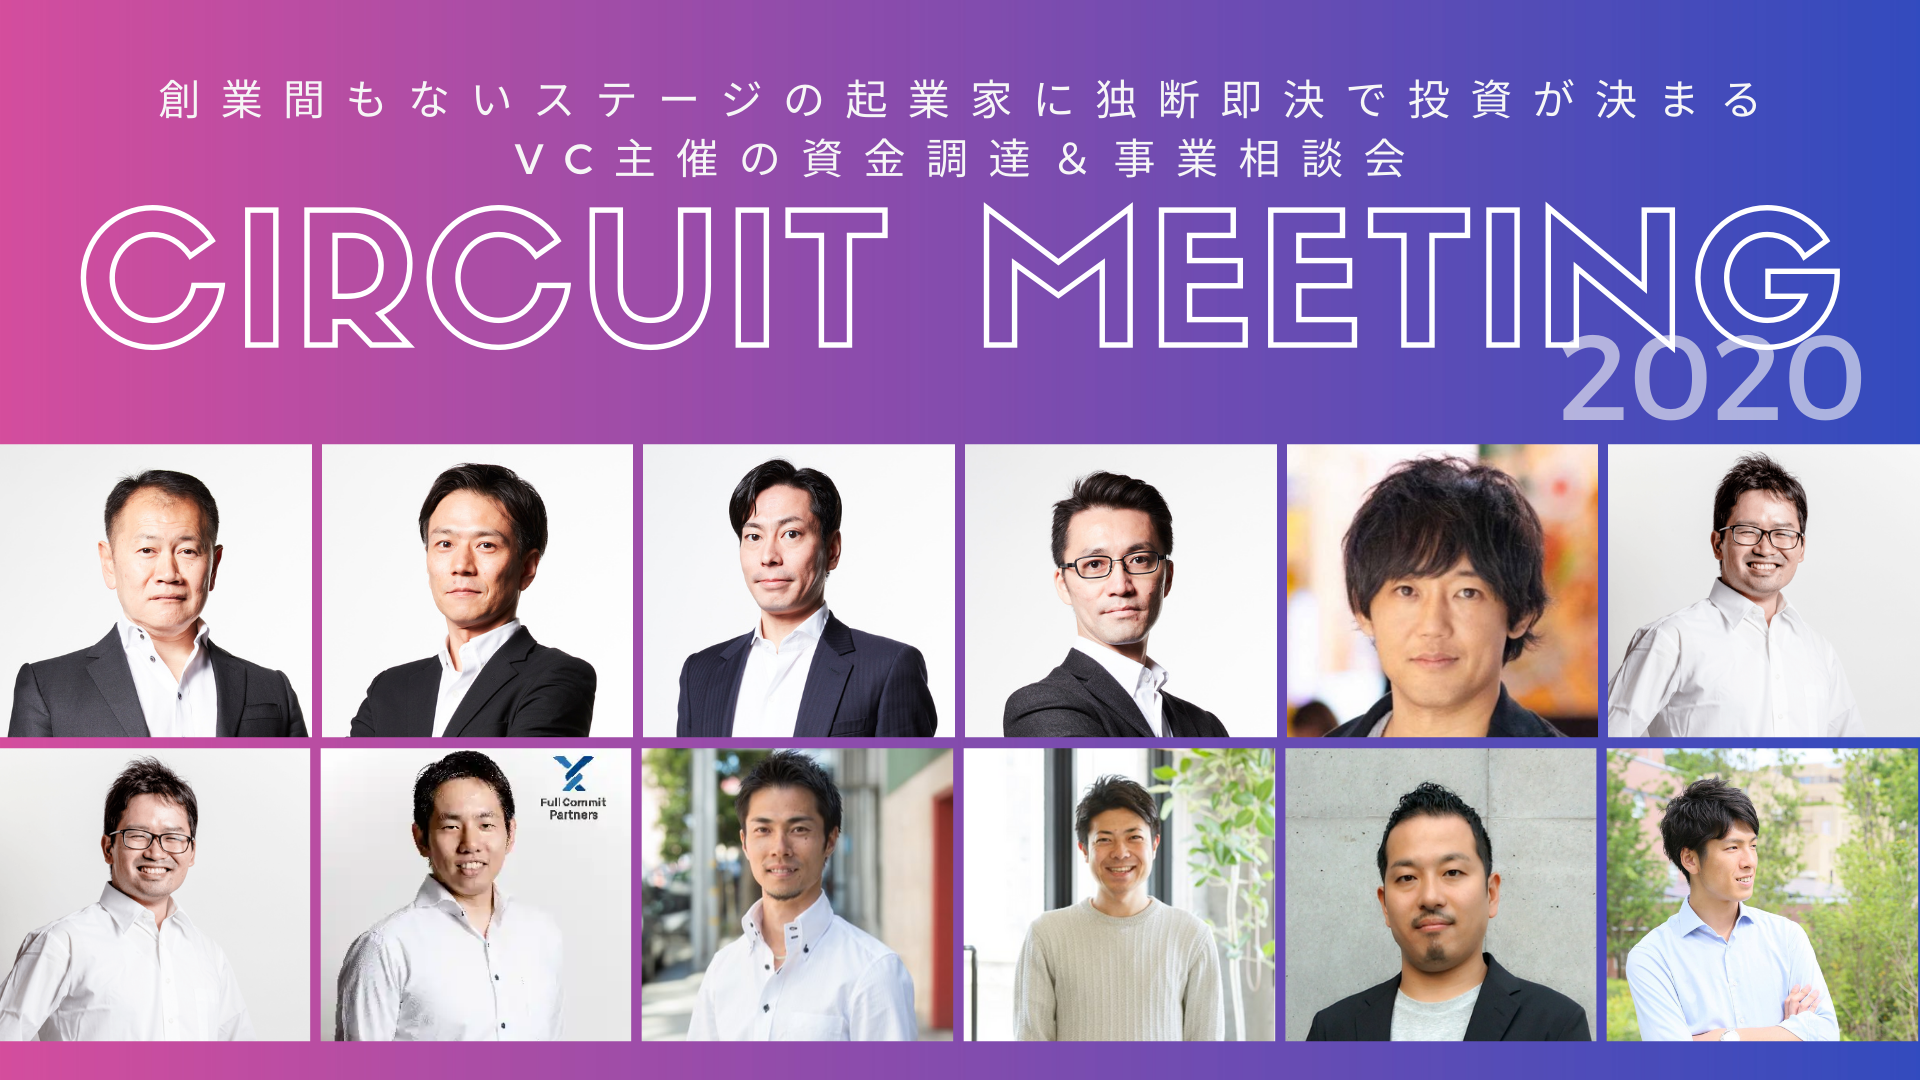 Circuit Meeting Vol.42